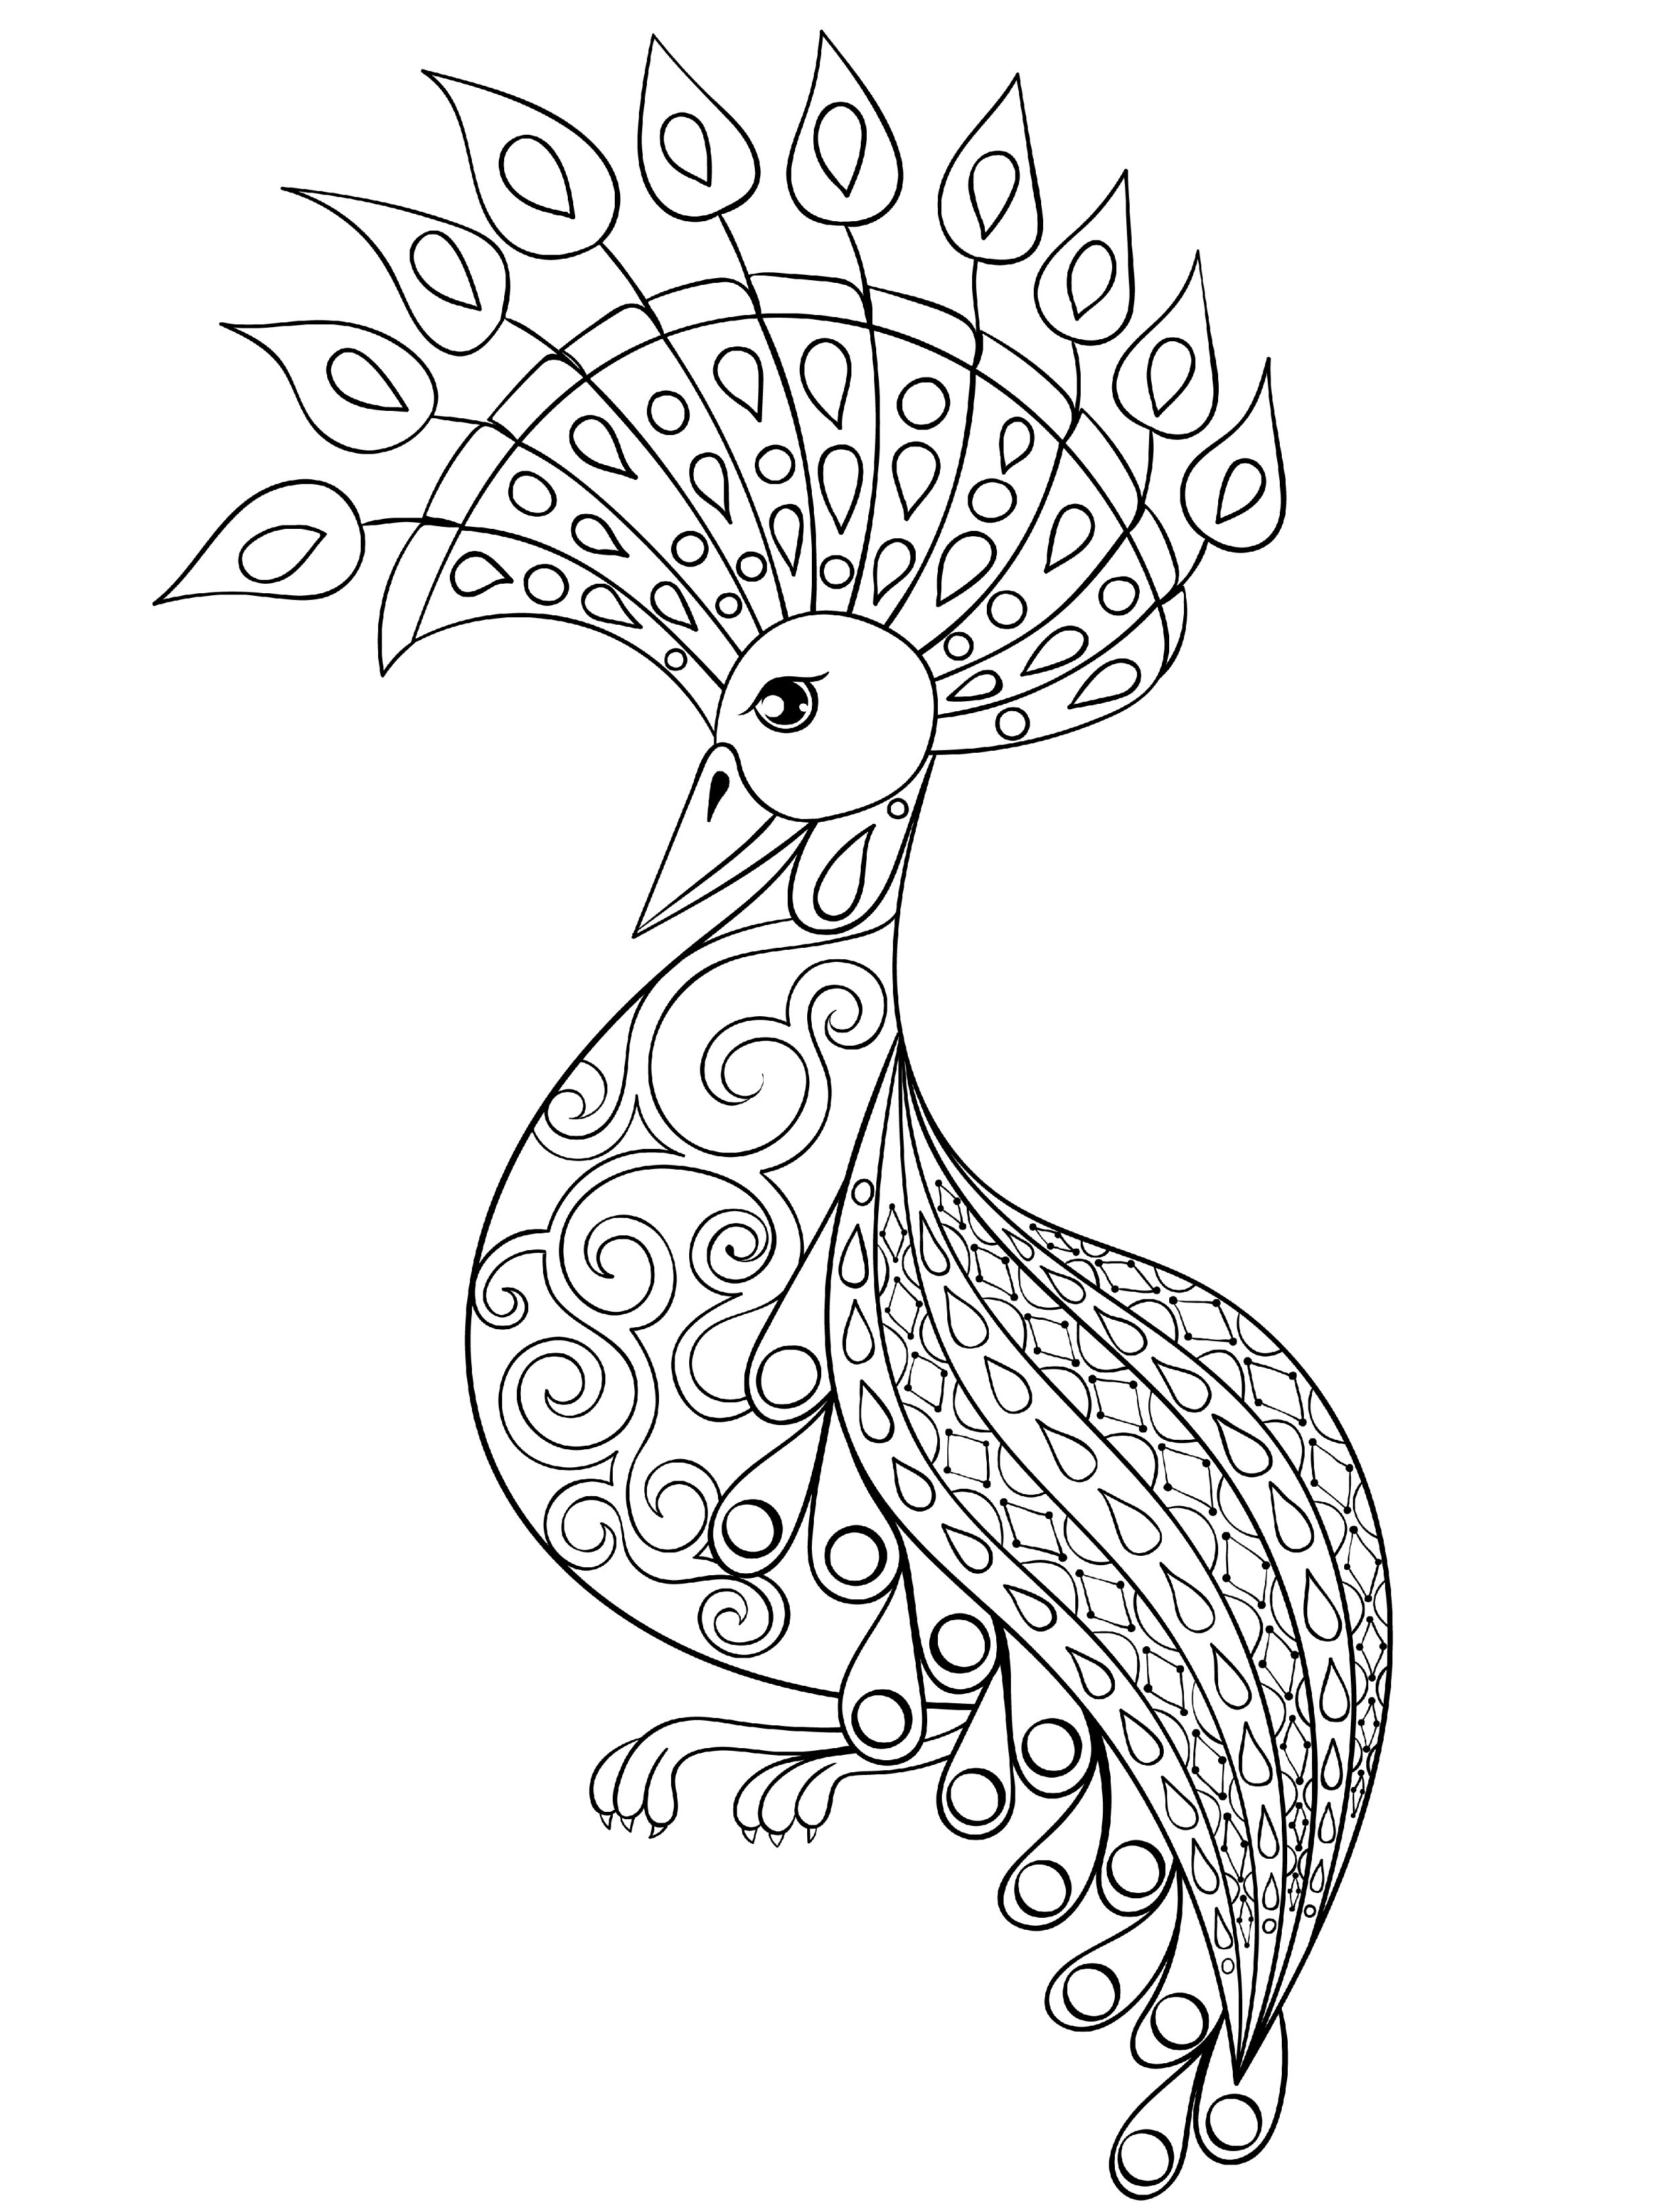 Best ideas about Small Adult Coloring Books . Save or Pin 10 Free Printable Holiday Adult Coloring Pages Now.